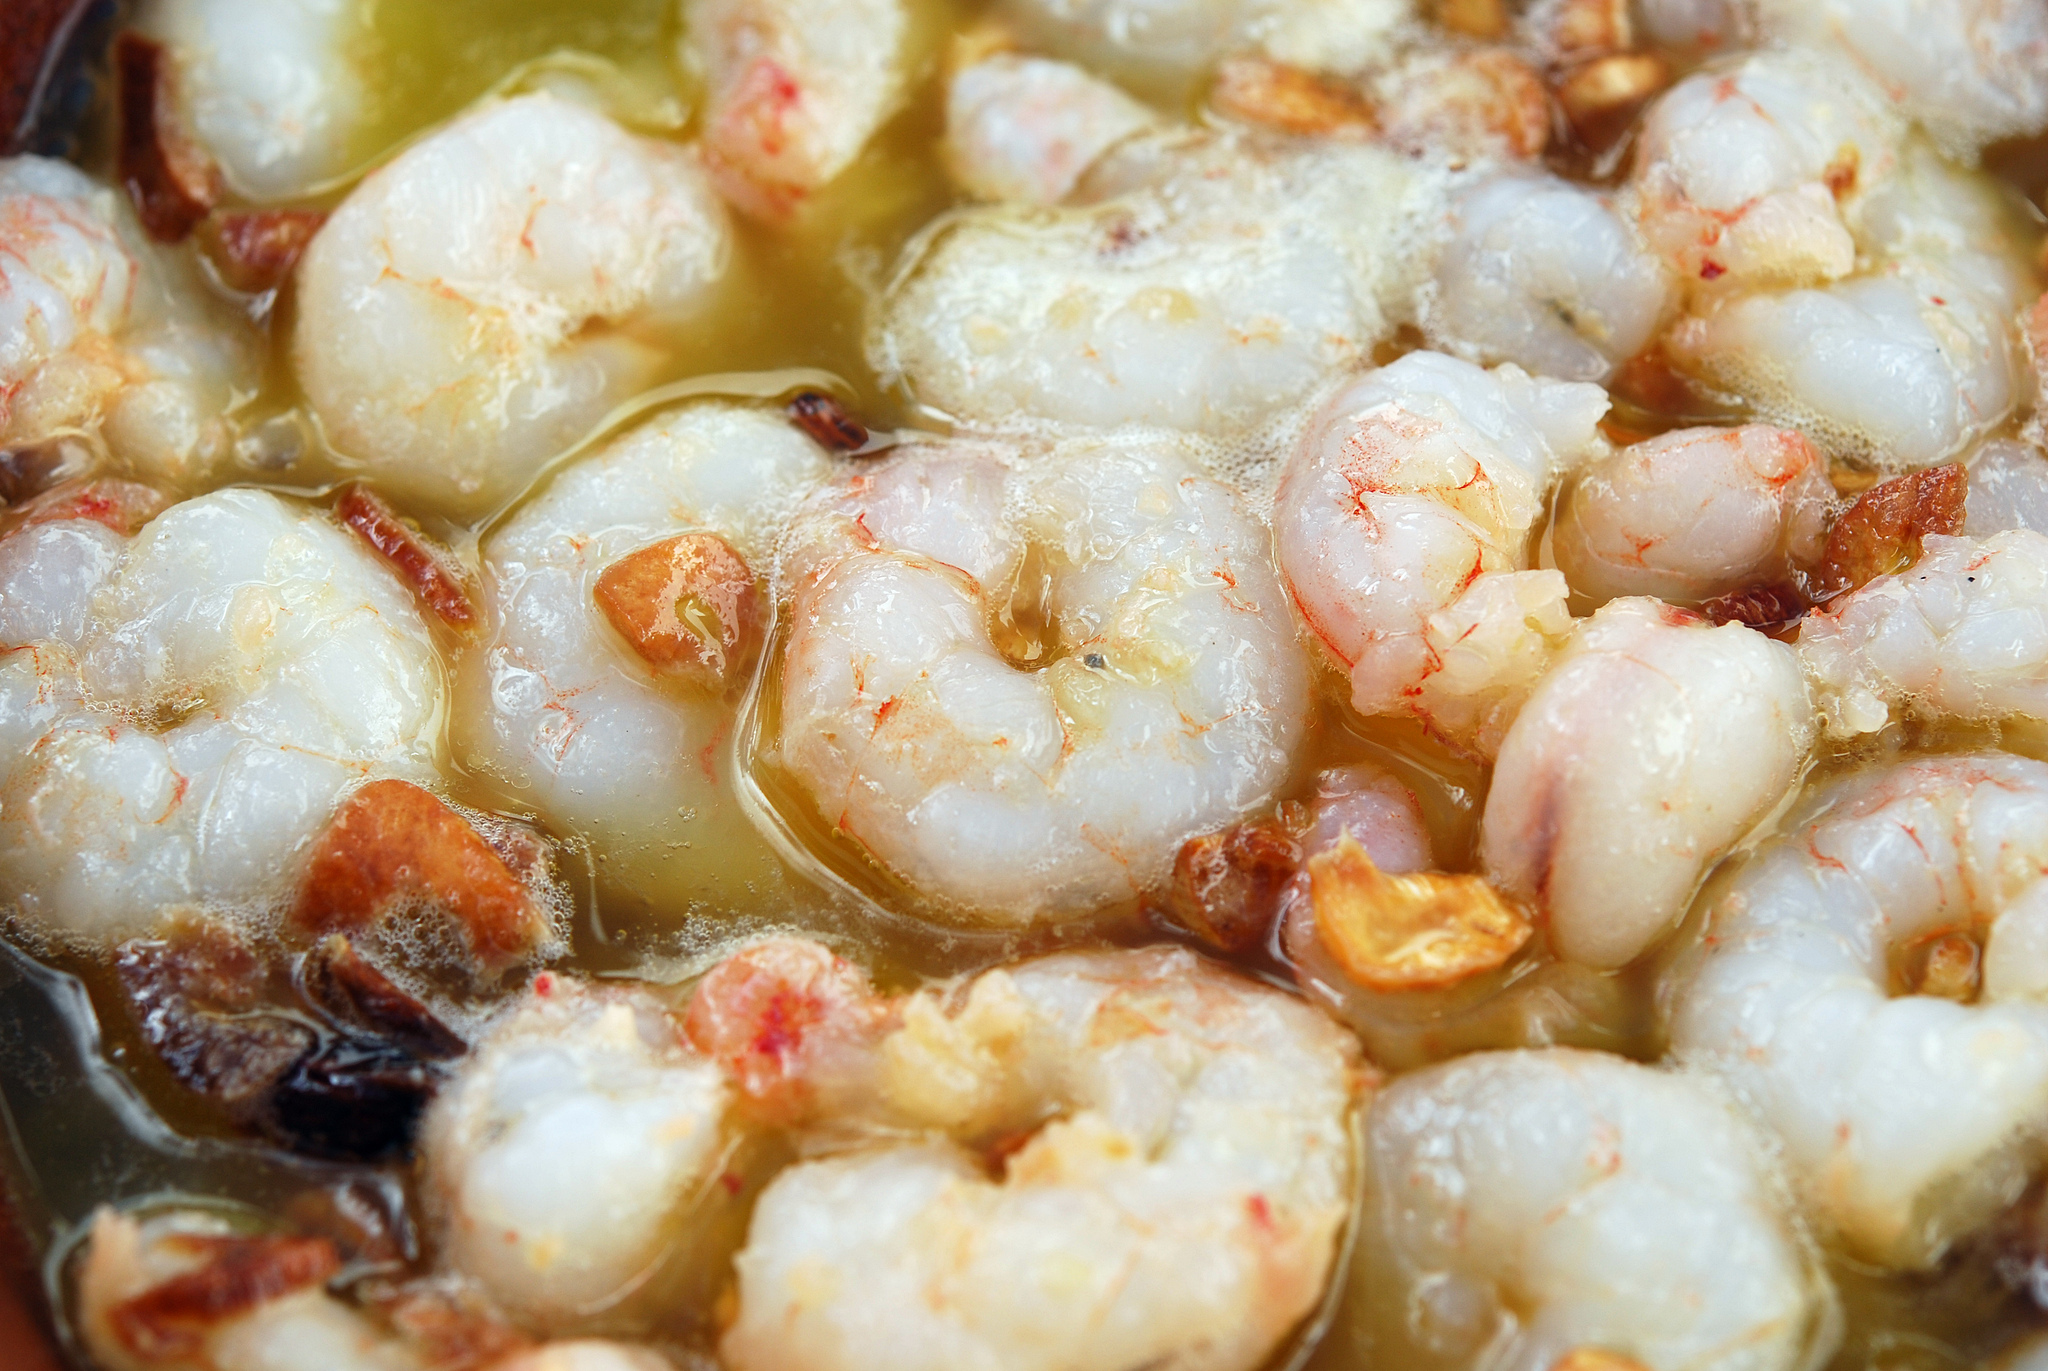 Gambas Al Ajillo Prawns In Garlic Recipe In Spanish English Nativespain Com